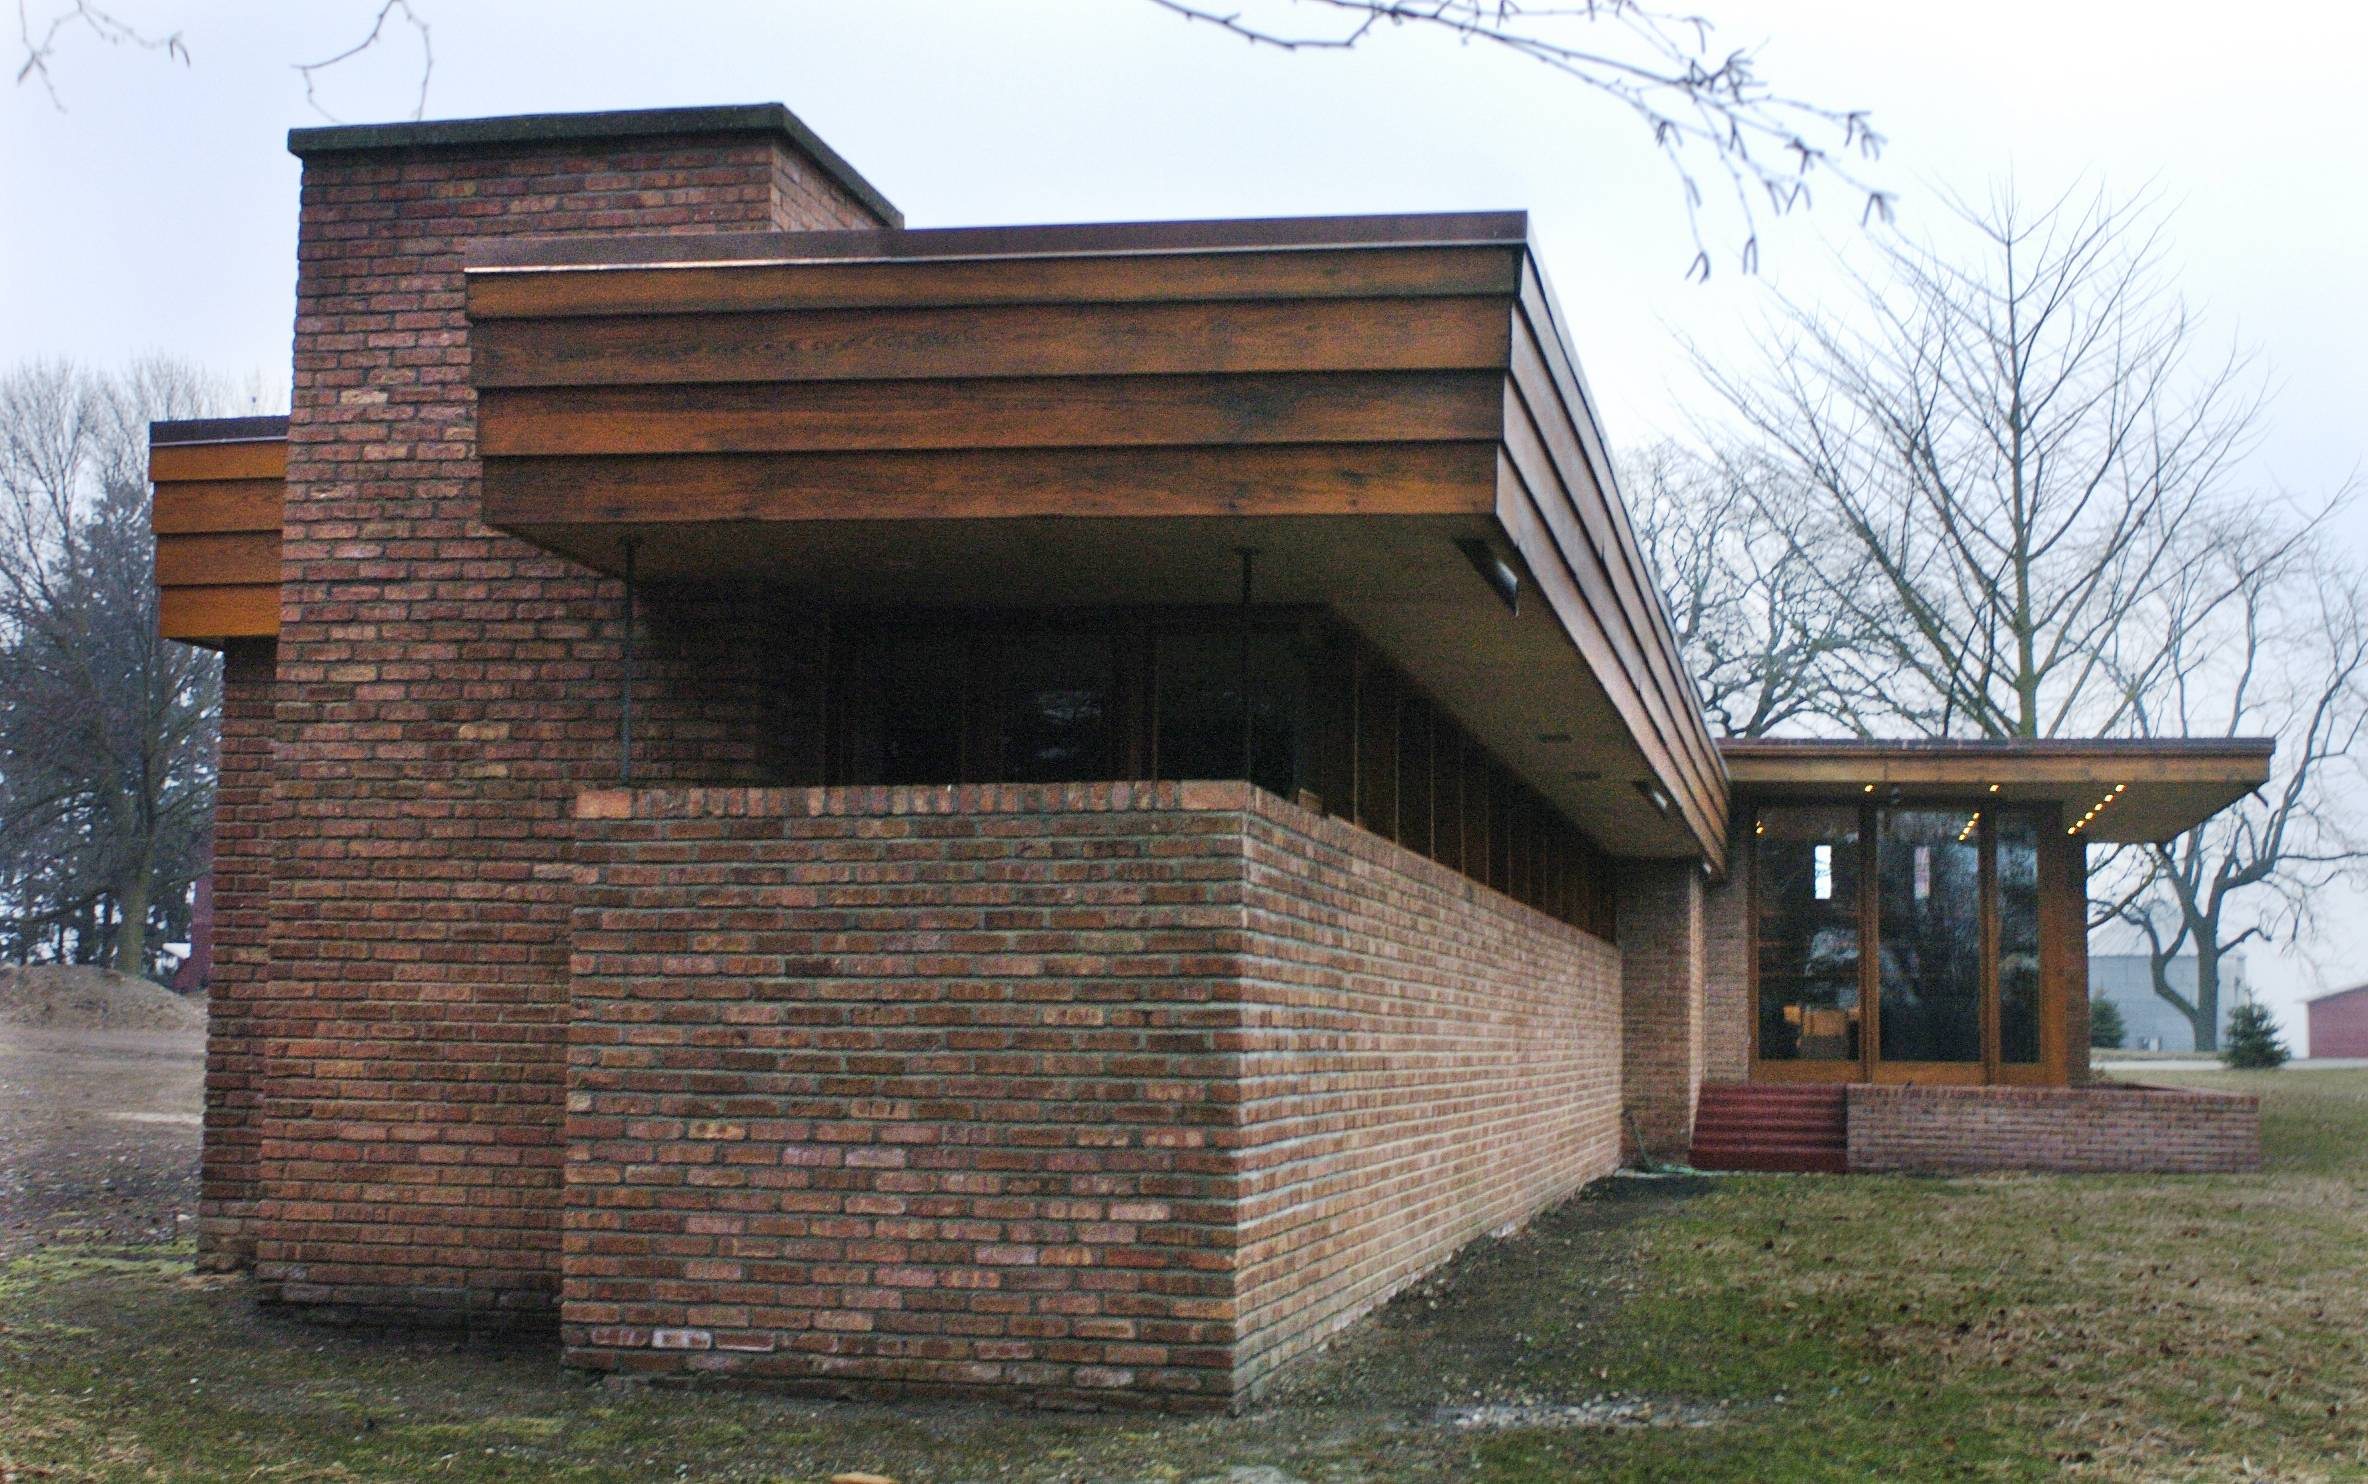 The Muirhead farmhouse has a Usonian design, a term coined by Frank Lloyd Wright to describe buildings uniquely suited for middle-income citizens of the United States or North America. Wright believed such buildings were the most challenging to design. The property, located near Plato Center, may be the only farmhouse Wright designed.